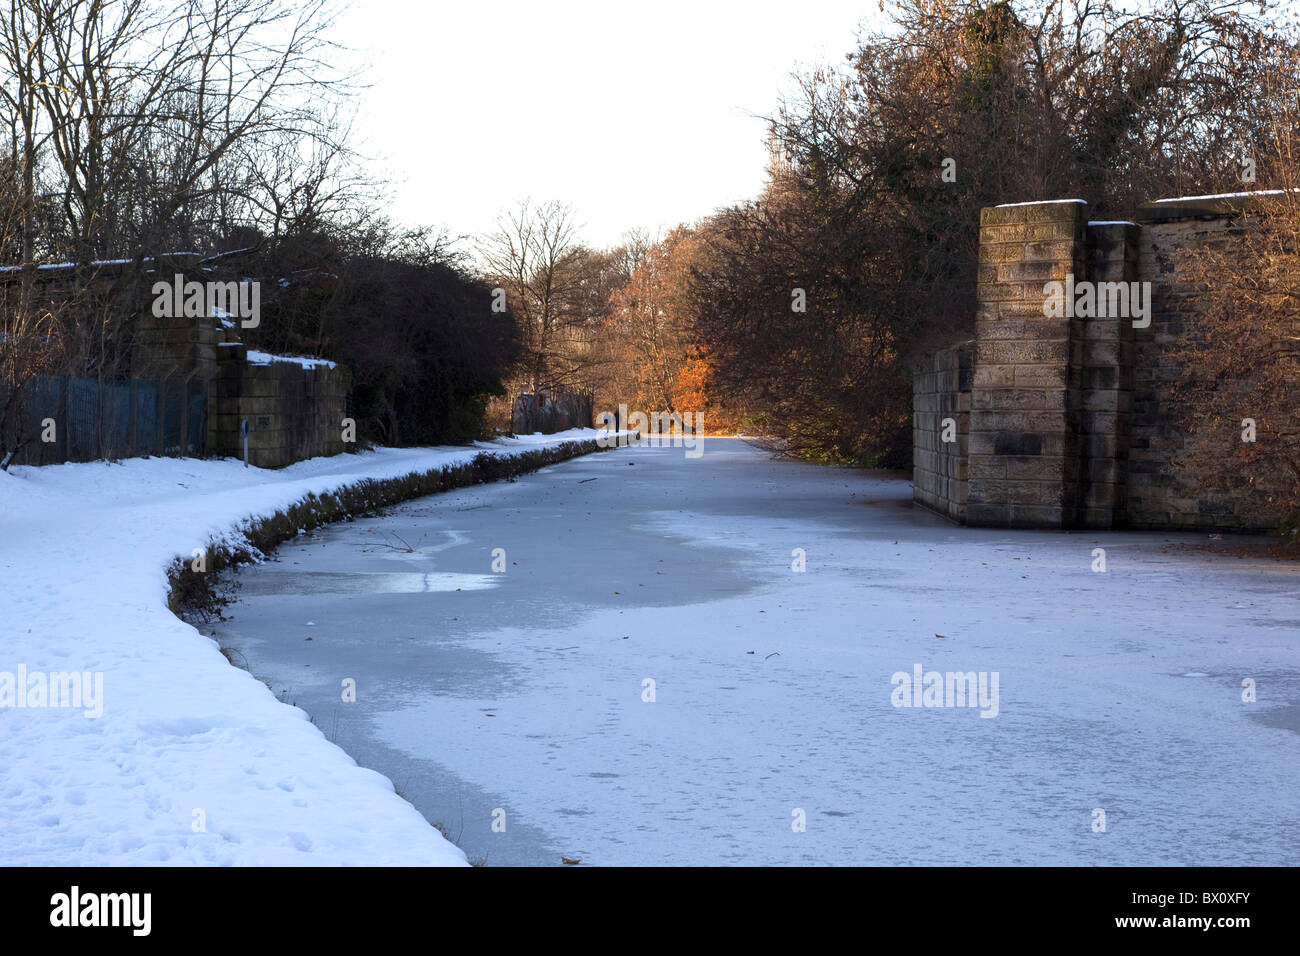 Winter view in heavy snow of the frozen Calder and Hebble navigation canal near Mirfield West Yorkshire - Stock Image